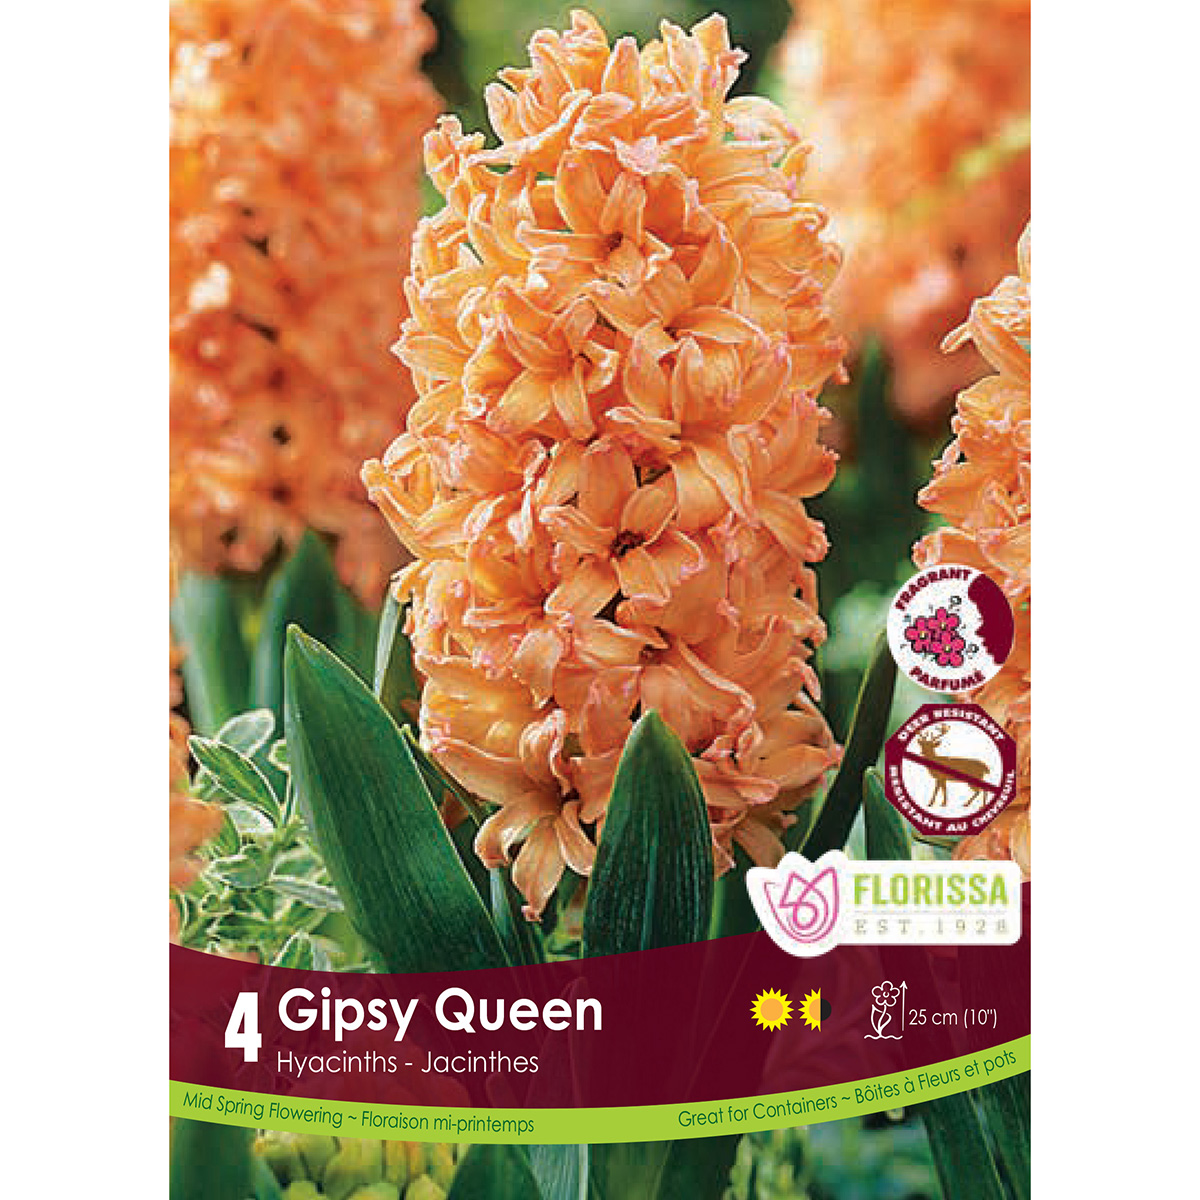 Hyacinth 'Gipsy Queen' Bulbs